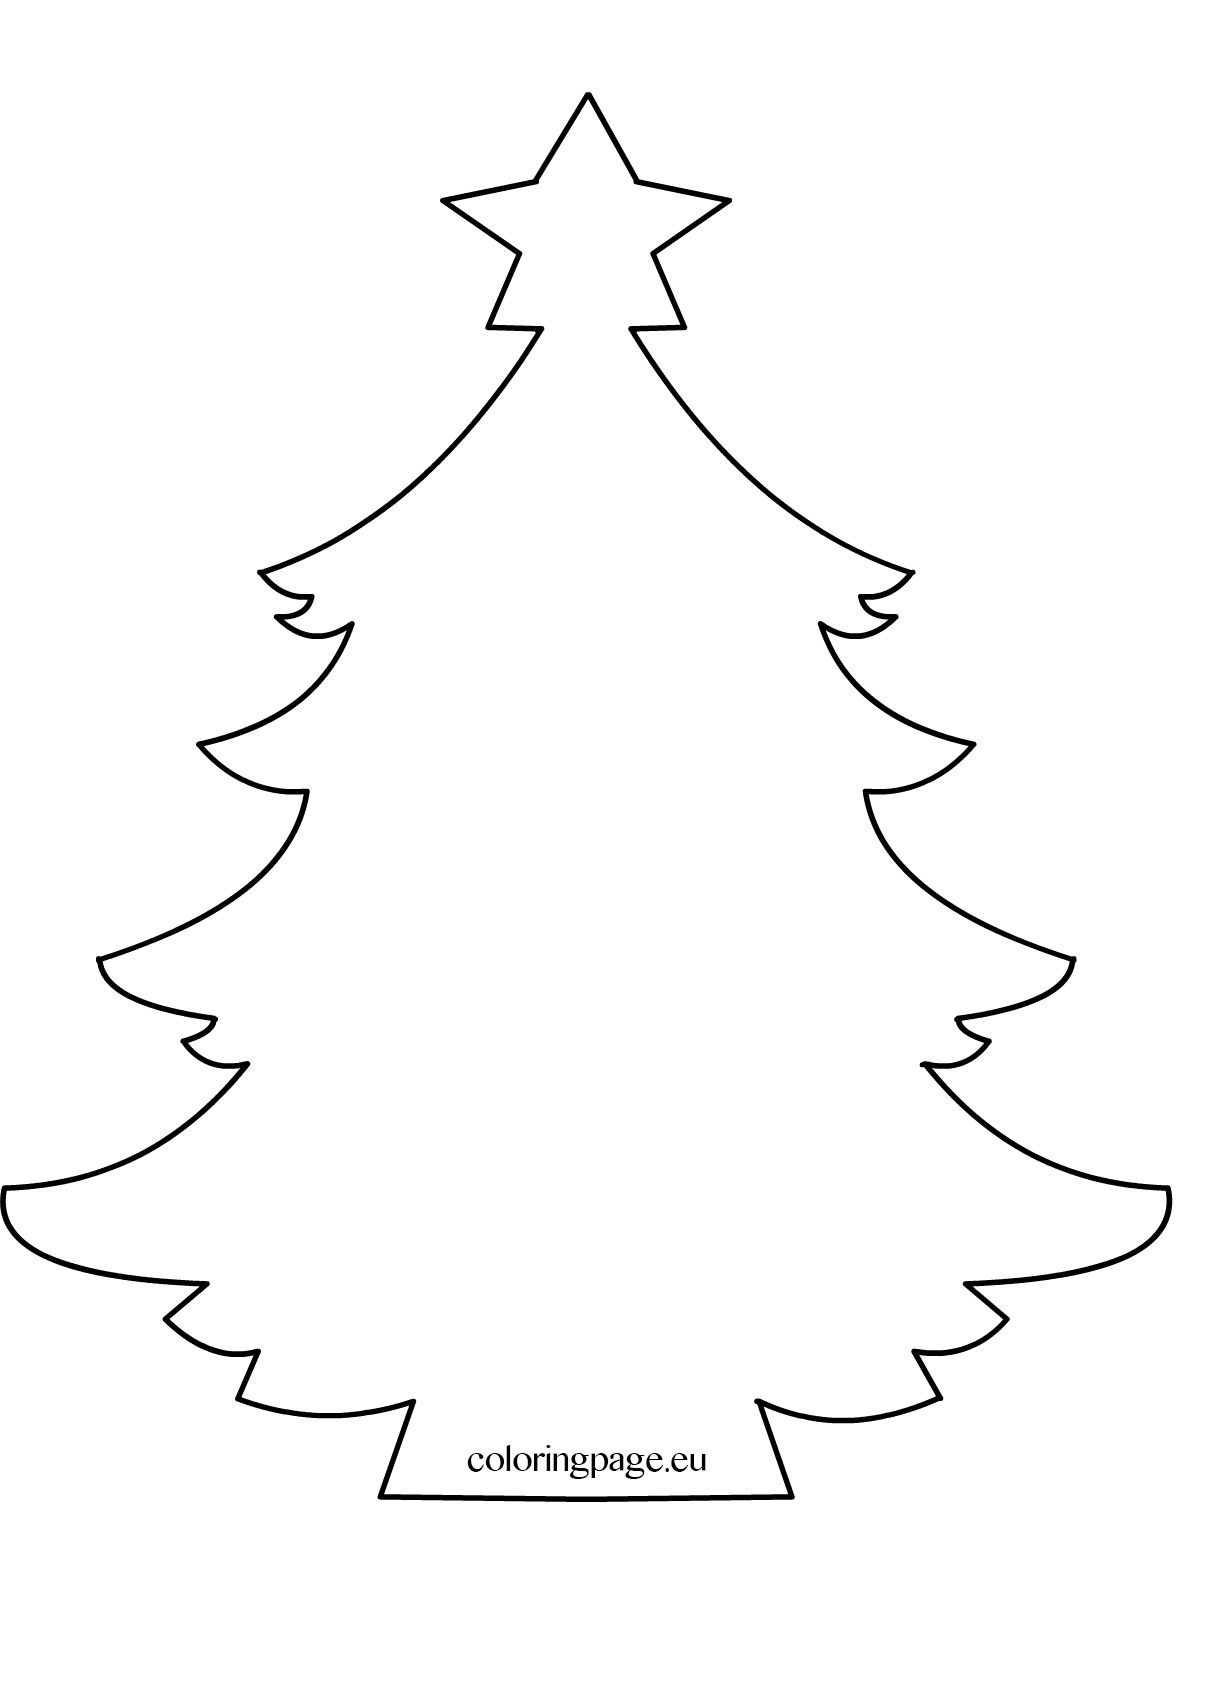 Free Printable Coloring Pages For Any Occasion Christmas Tree Template Christmas Tree Coloring Page Christmas Tree Outline